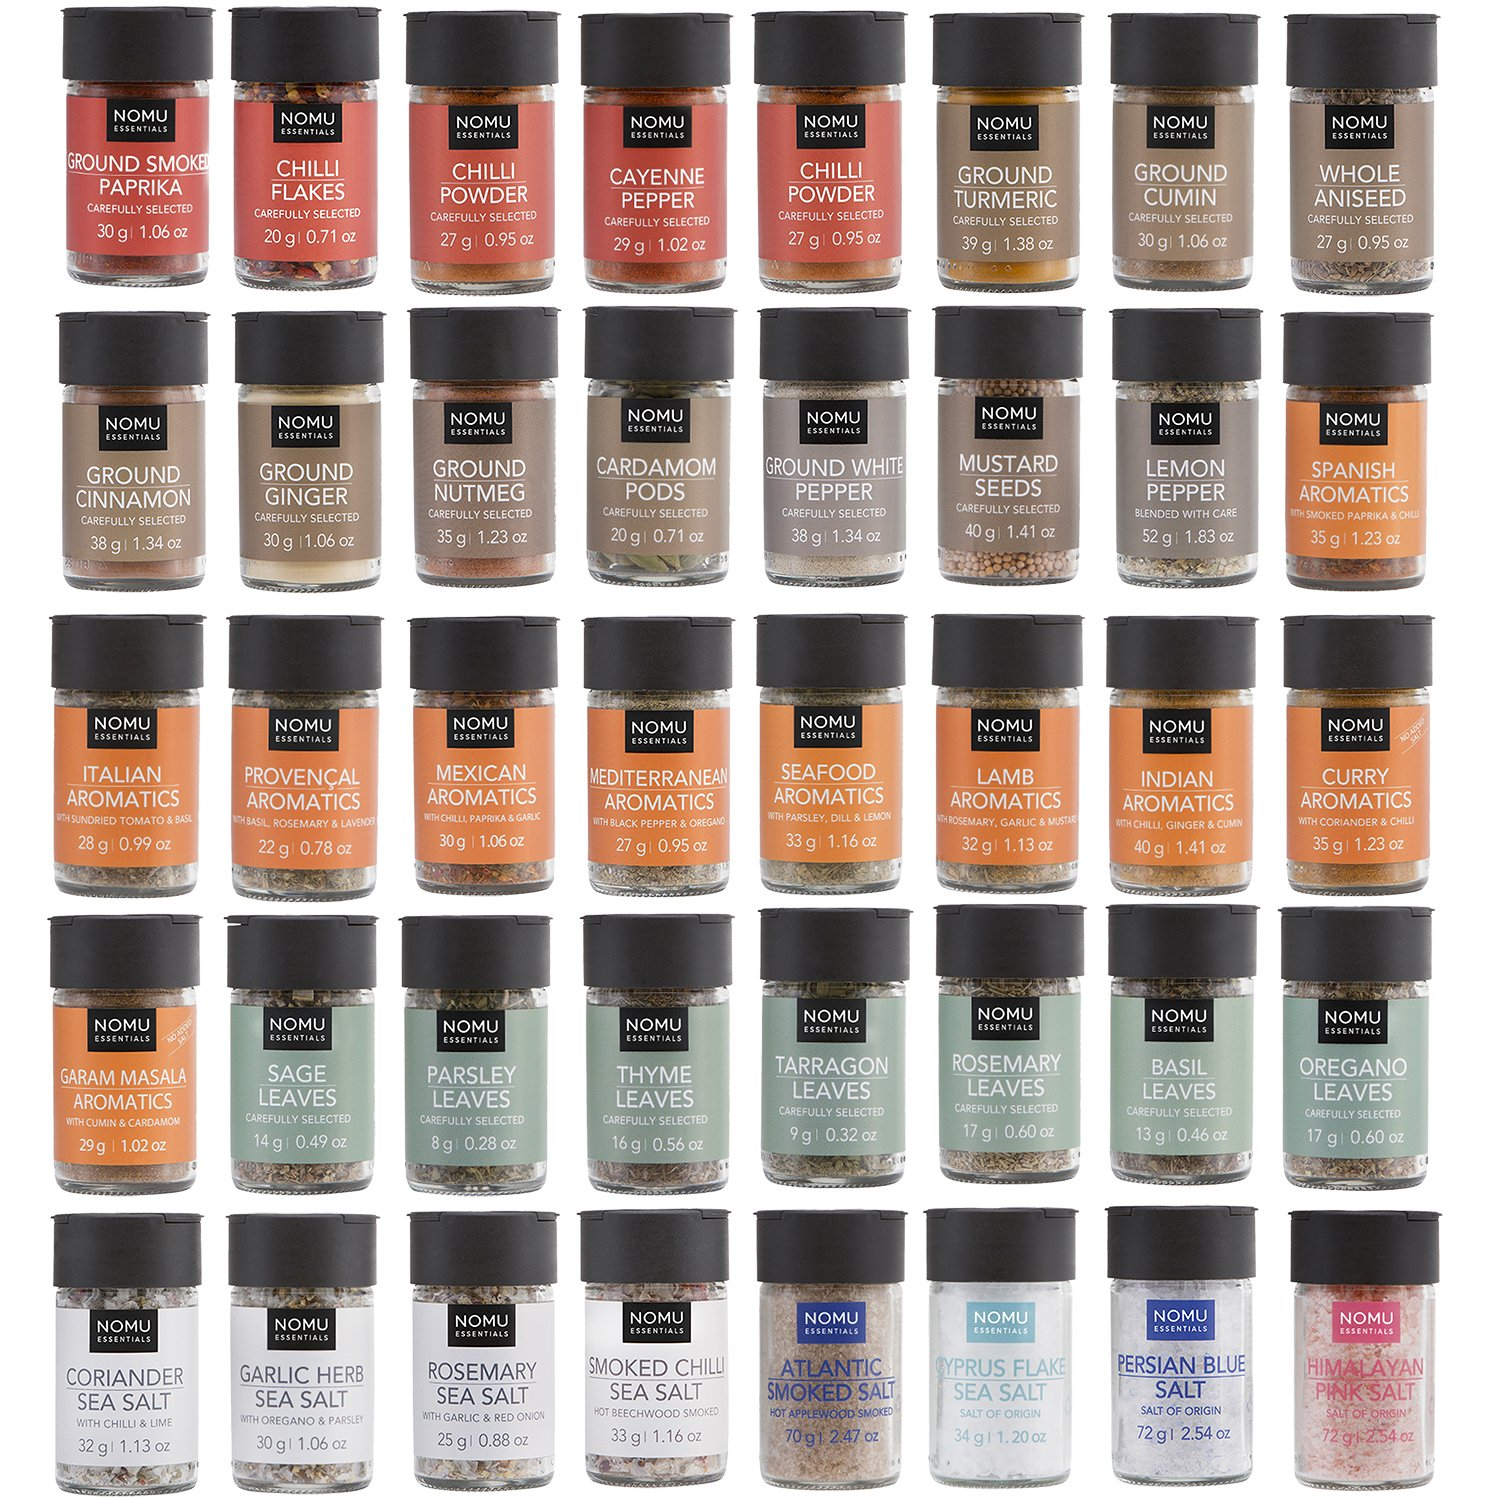 NOMU 40-Piece Complete Variety Set of Spices, Herbs, Chilis, Salts and Seasoning Blends Range | Non-irradiated, No MSG or Preservatives